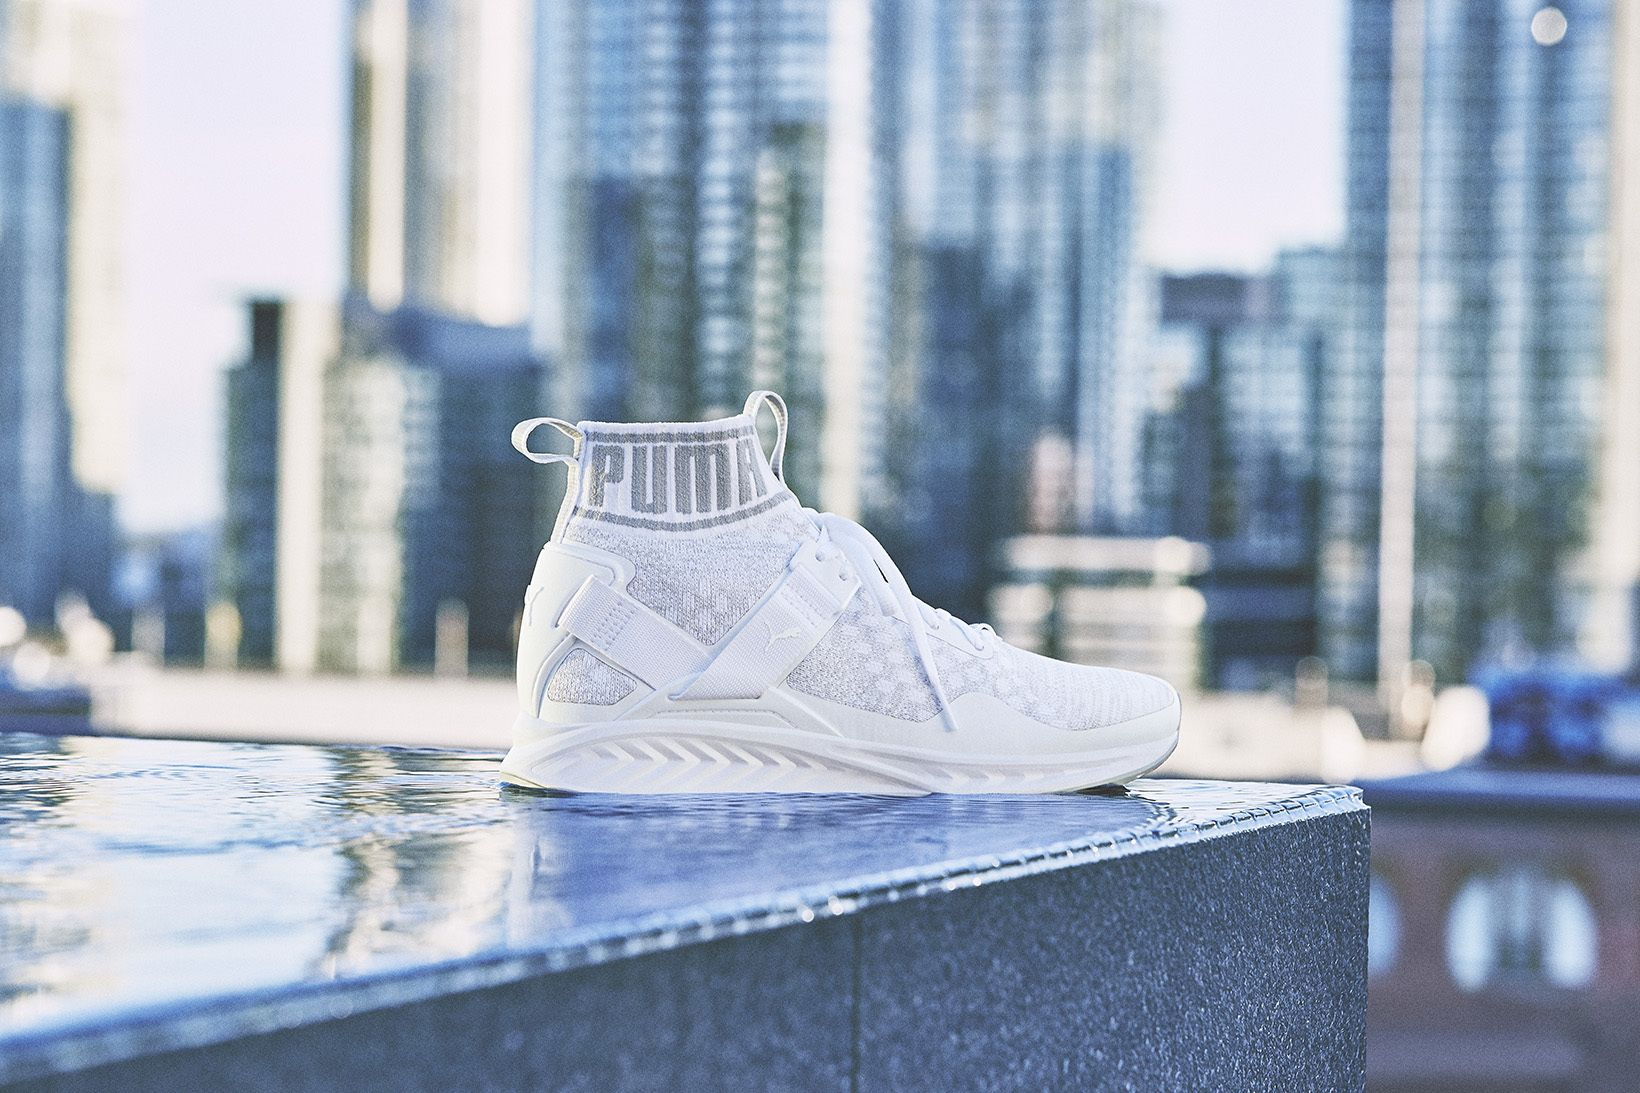 bbd6203b46e PUMA Unveils Two More Colorways of the IGNITE evoKNIT With a Little ...